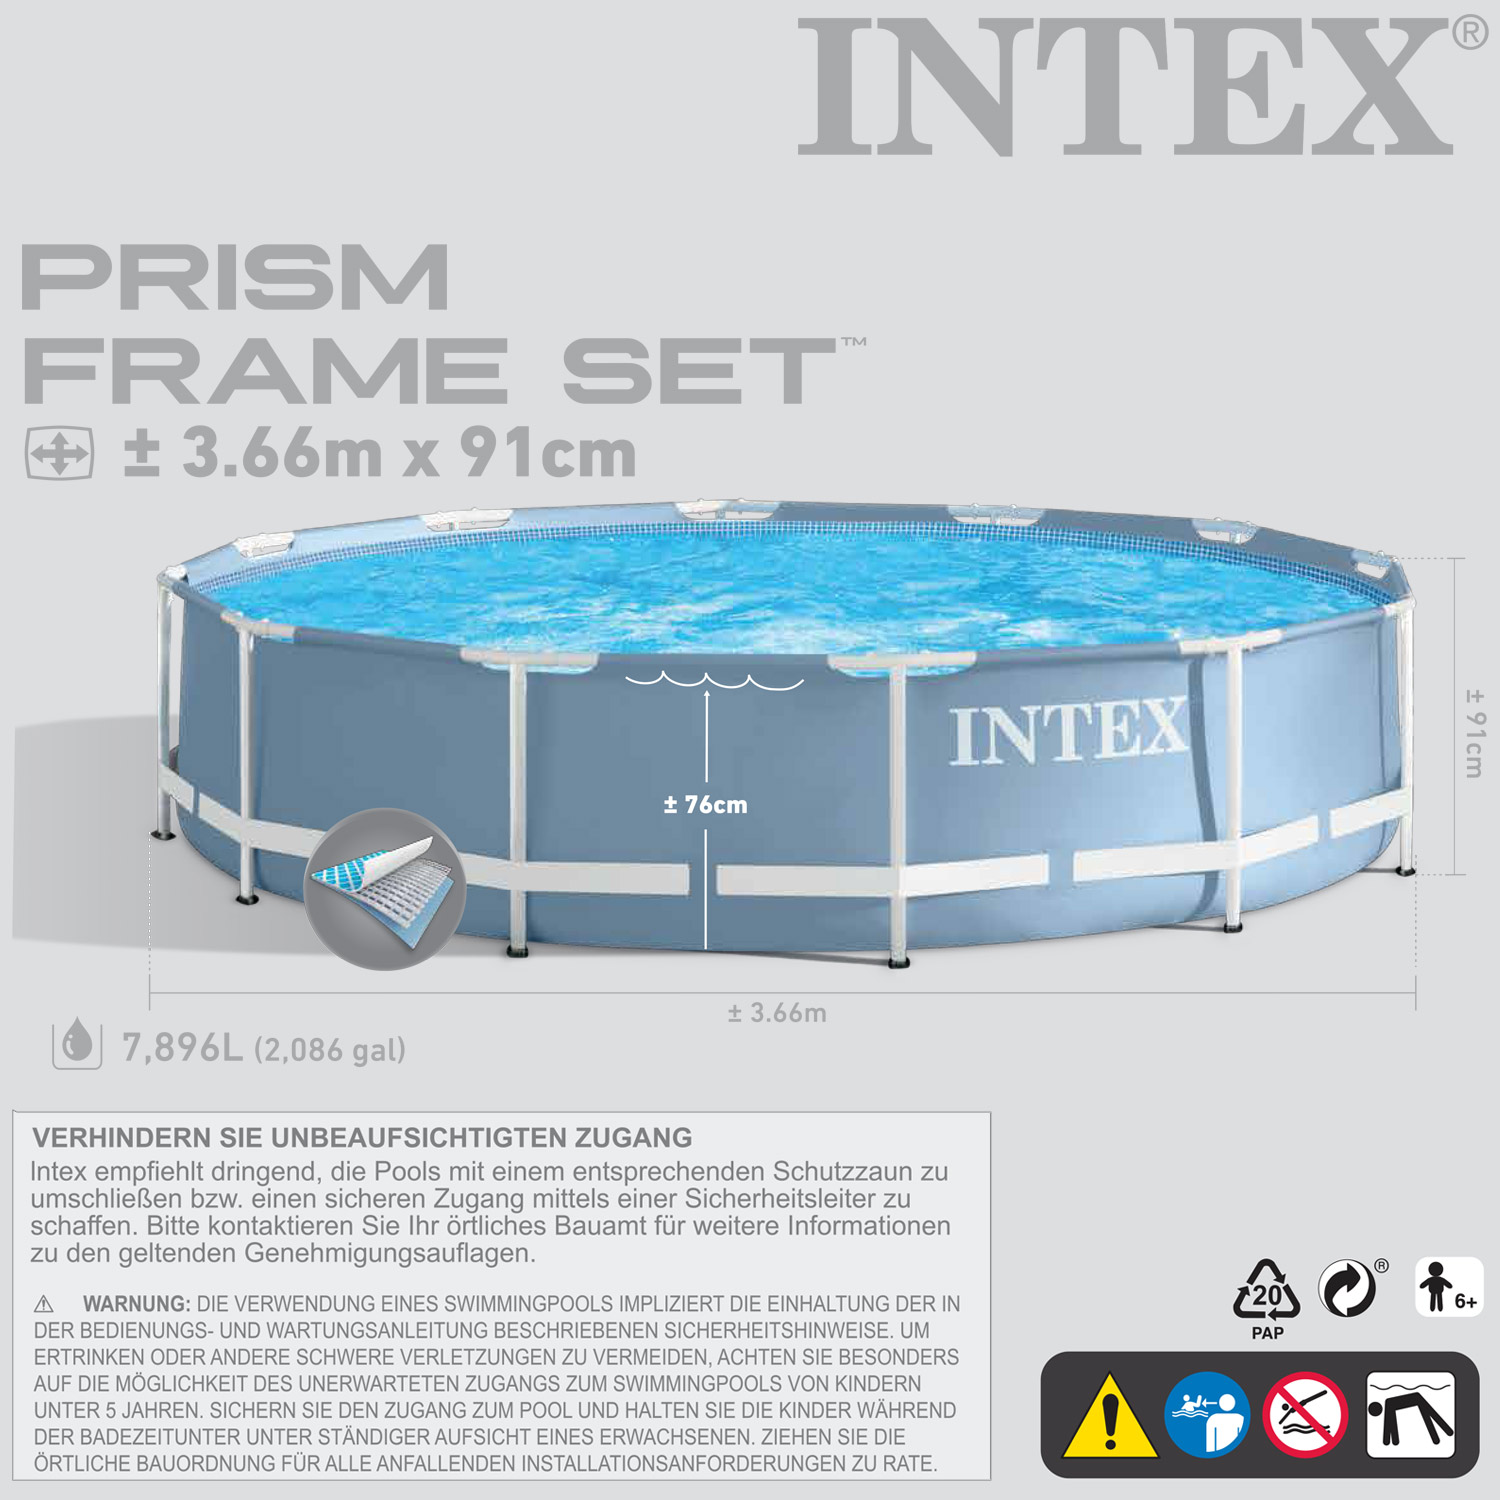 intex ersatz pool frame 366 x 91 cm filterpumpe leiter solarfolie. Black Bedroom Furniture Sets. Home Design Ideas